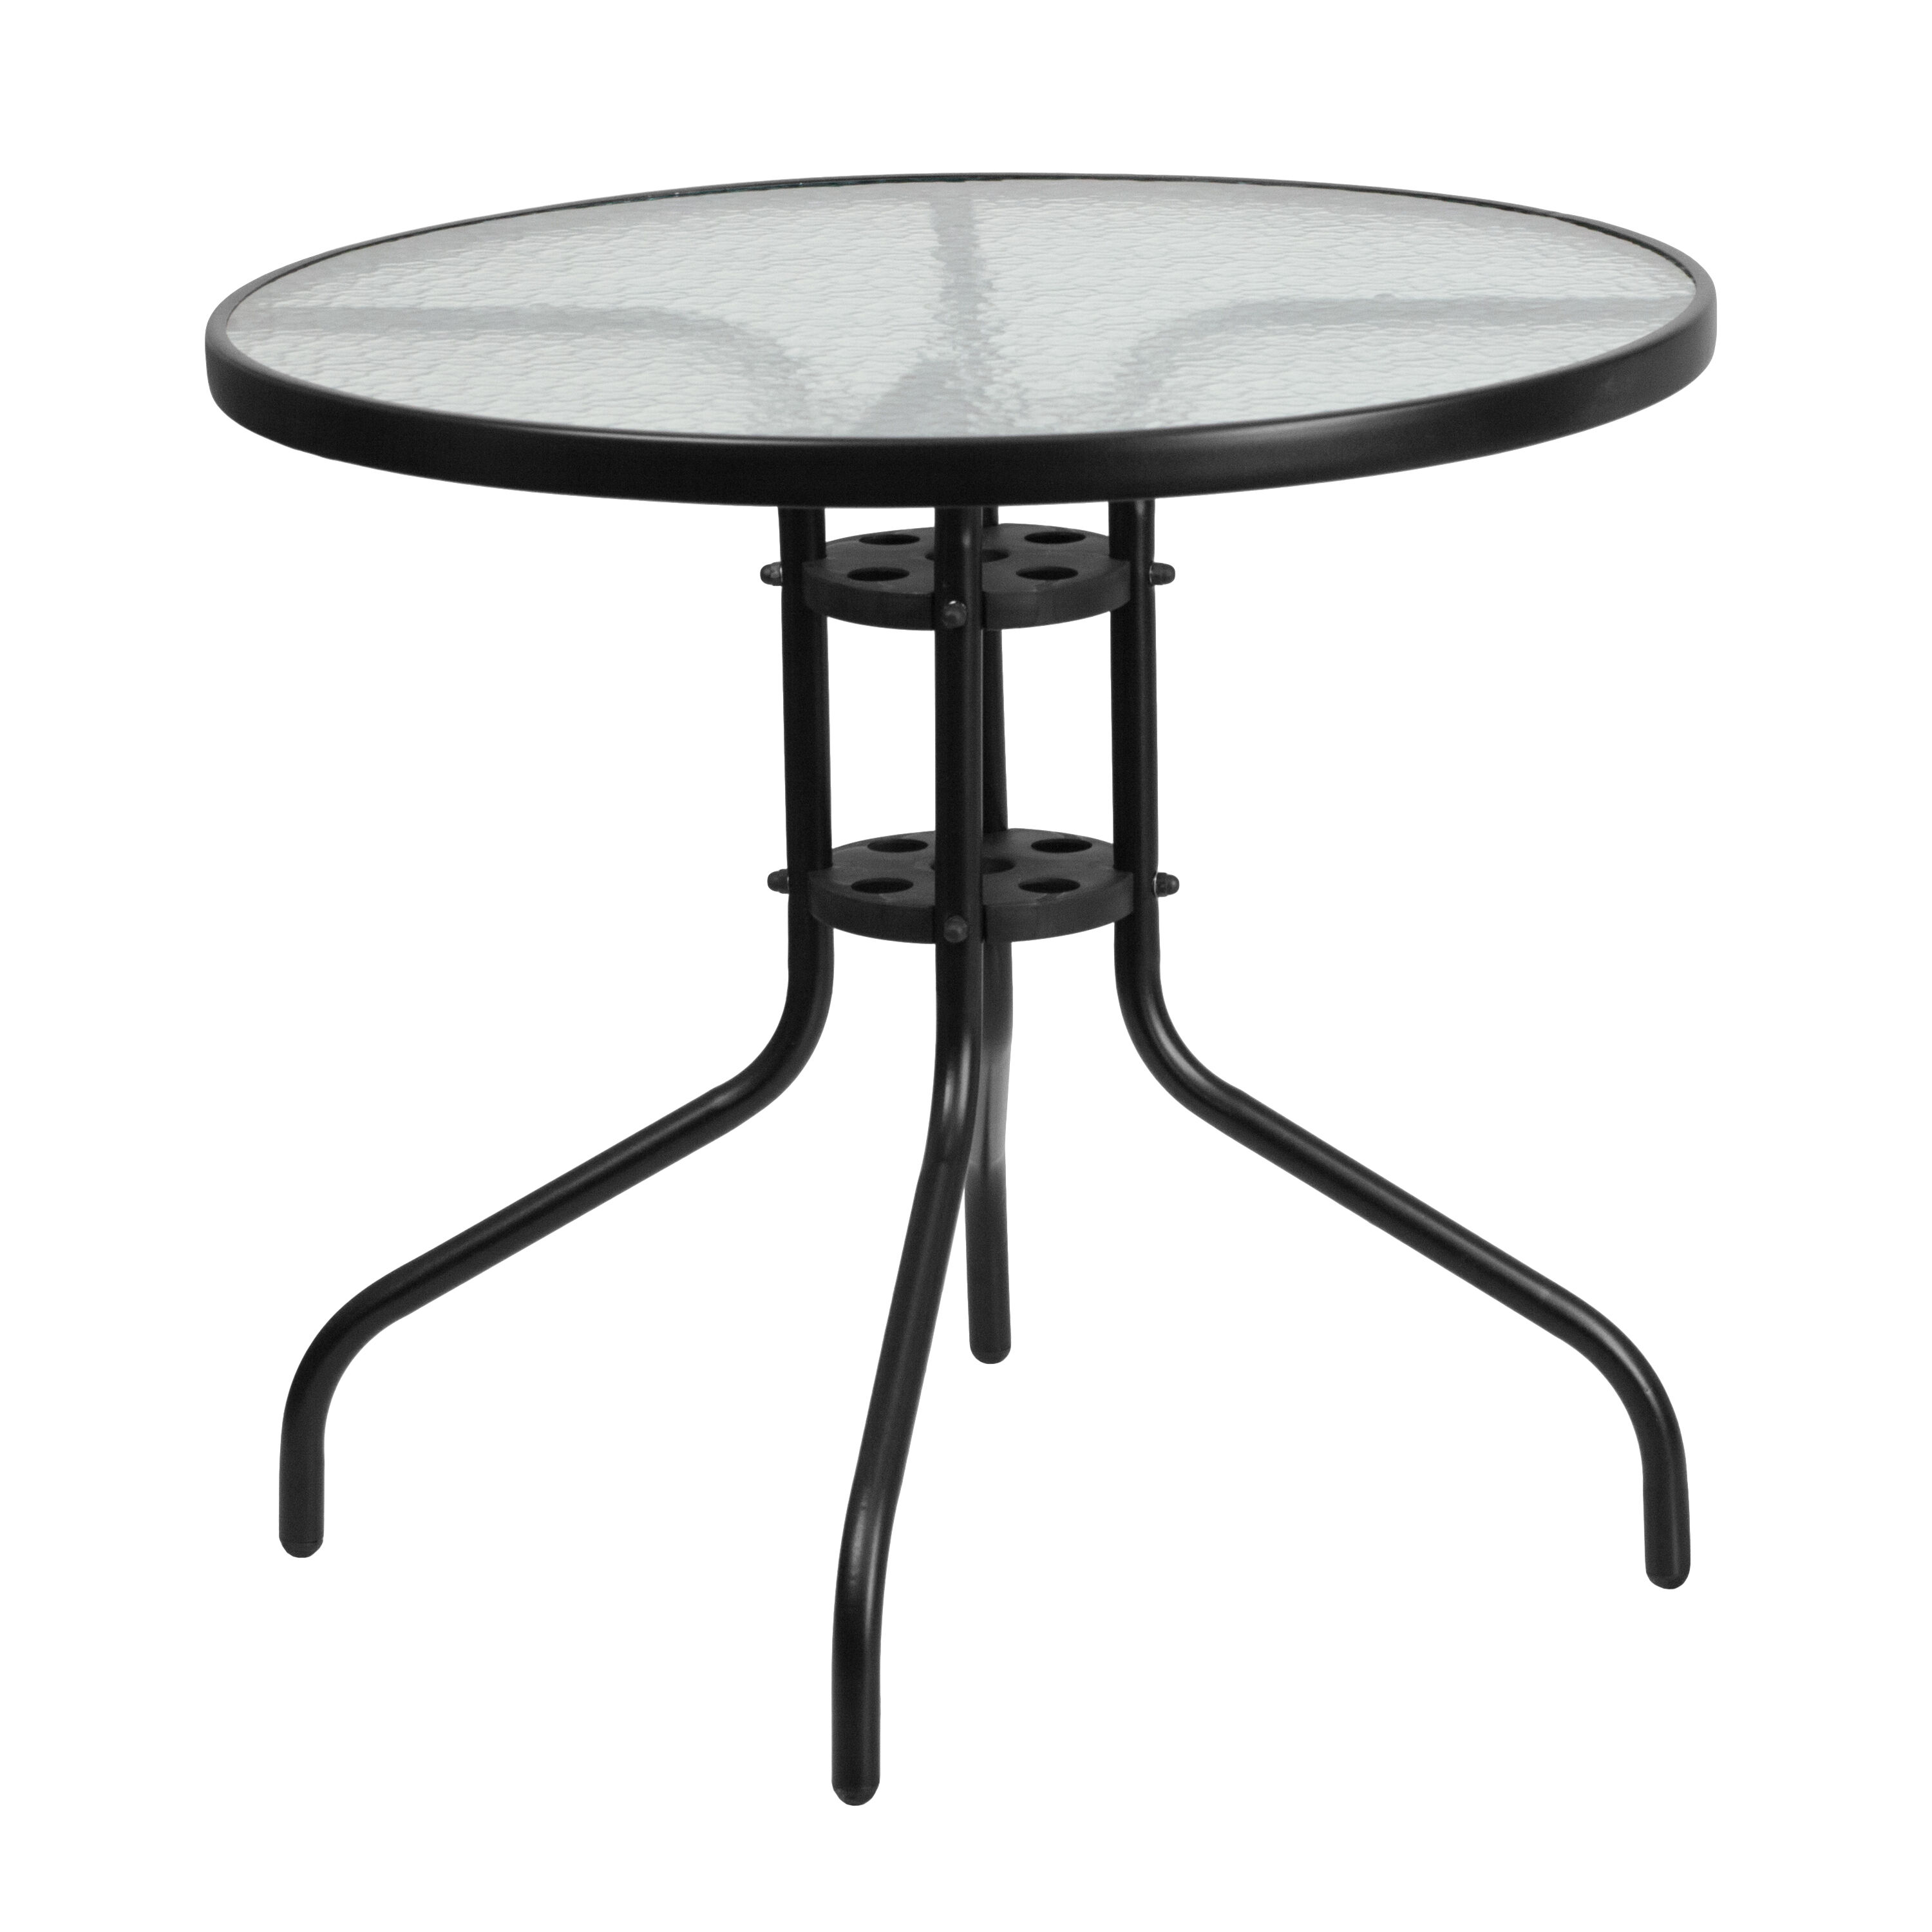 Round outdoor metal table Bistro Table Our 315 Round Tempered Glass Metal Table Is On Sale Now Restaurant Furniture Less 315rd Glass Black Patio Table Tlh0702gg